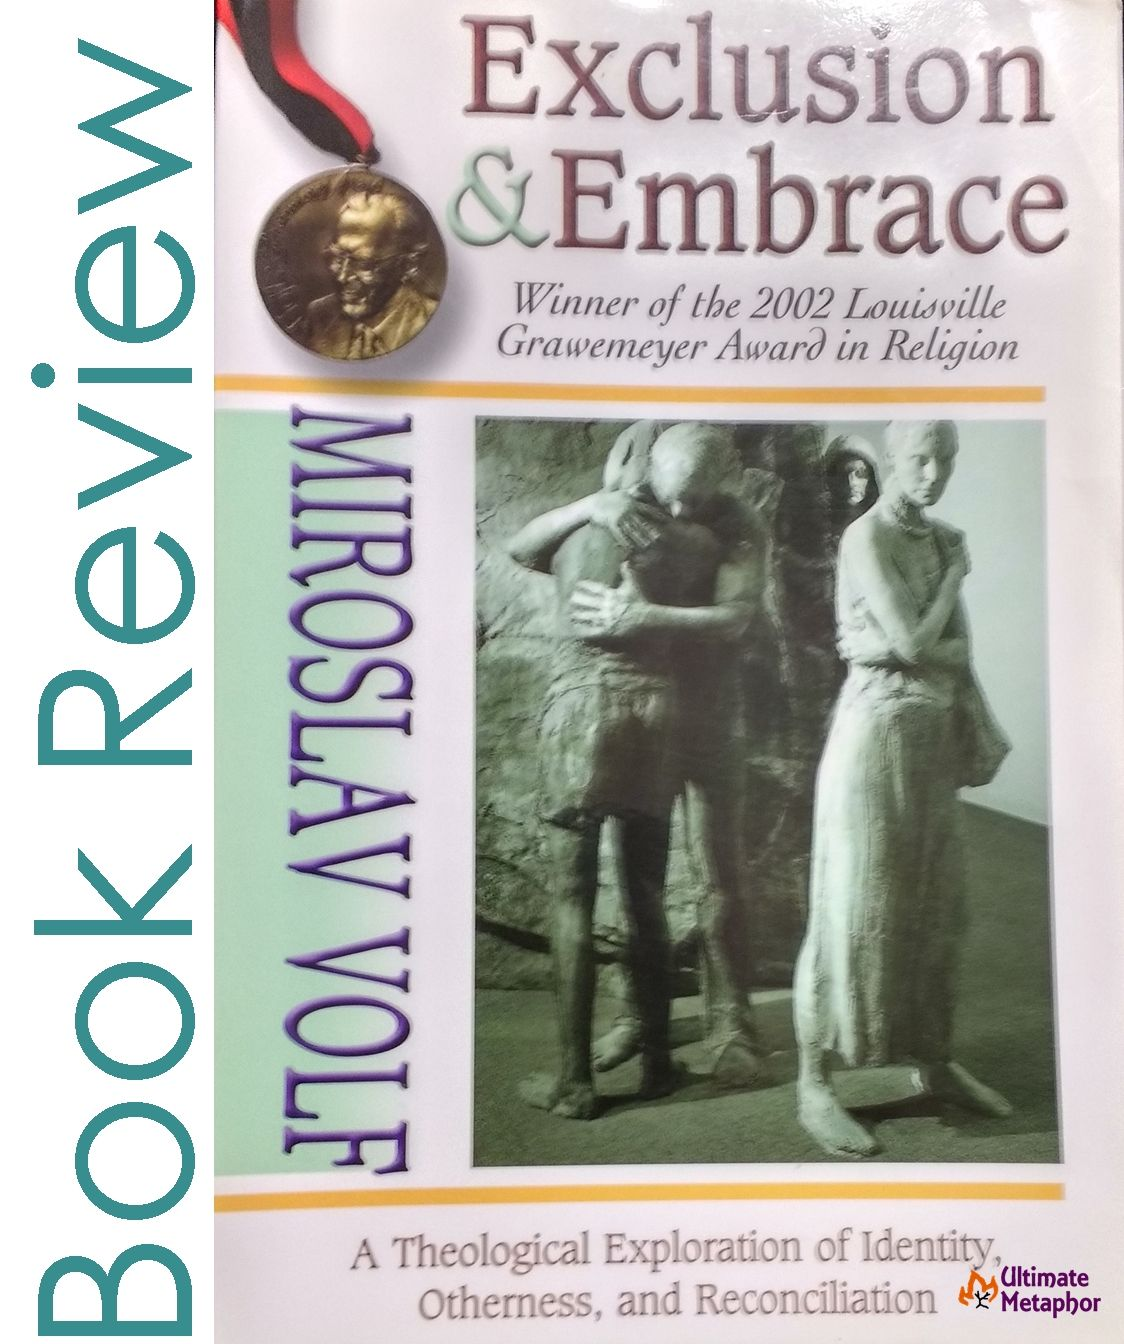 Book Review: Exclusion & Embrace